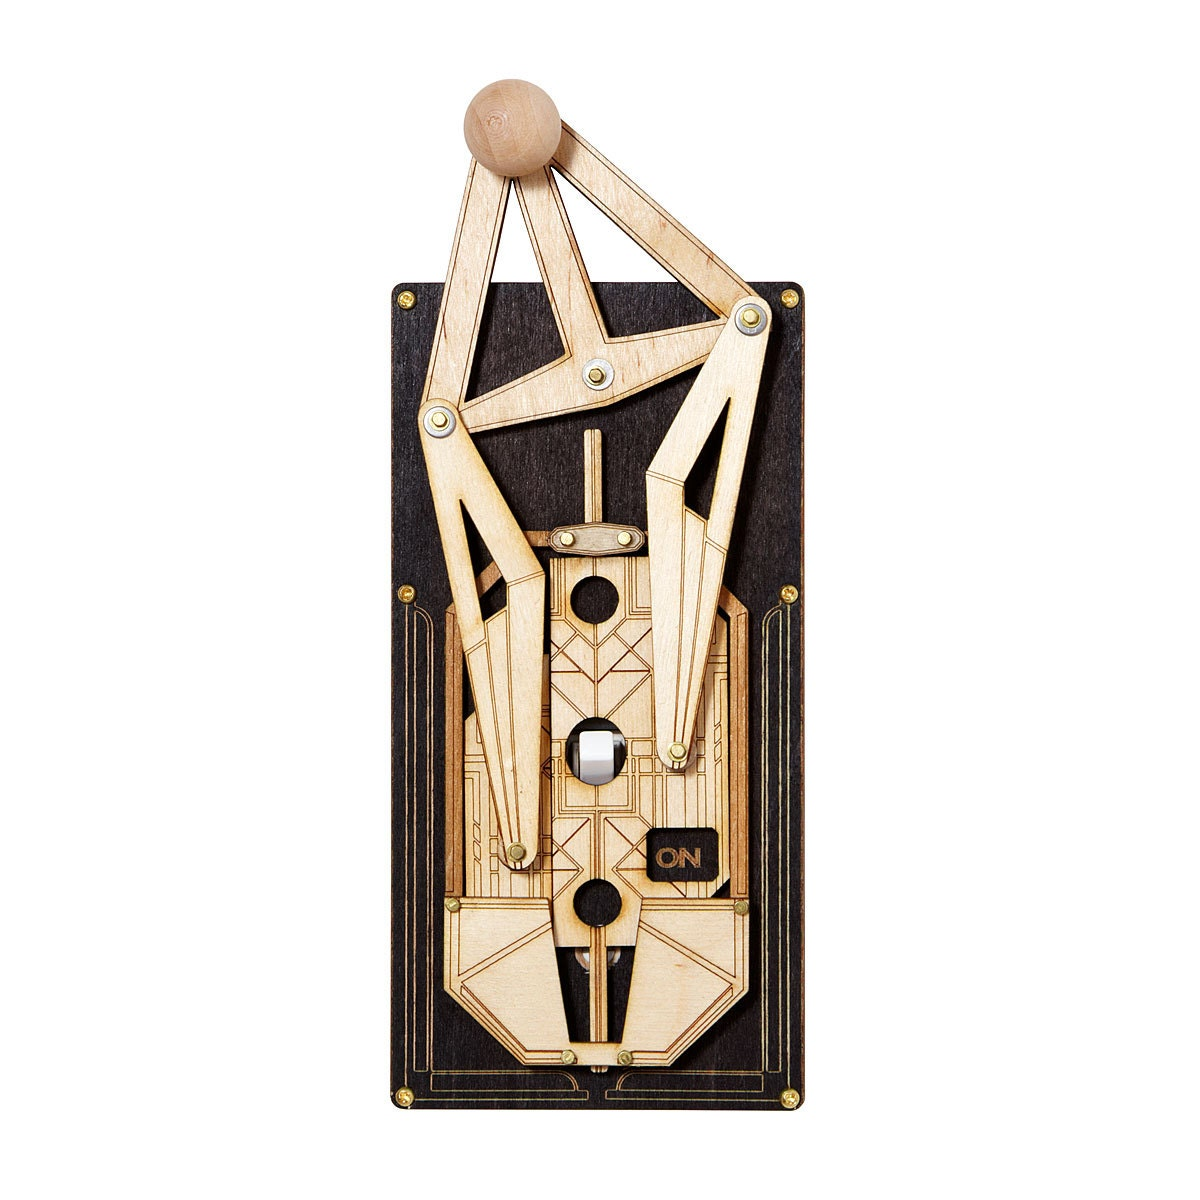 Art deco light rig switch plate - Art deco switch plate covers ...